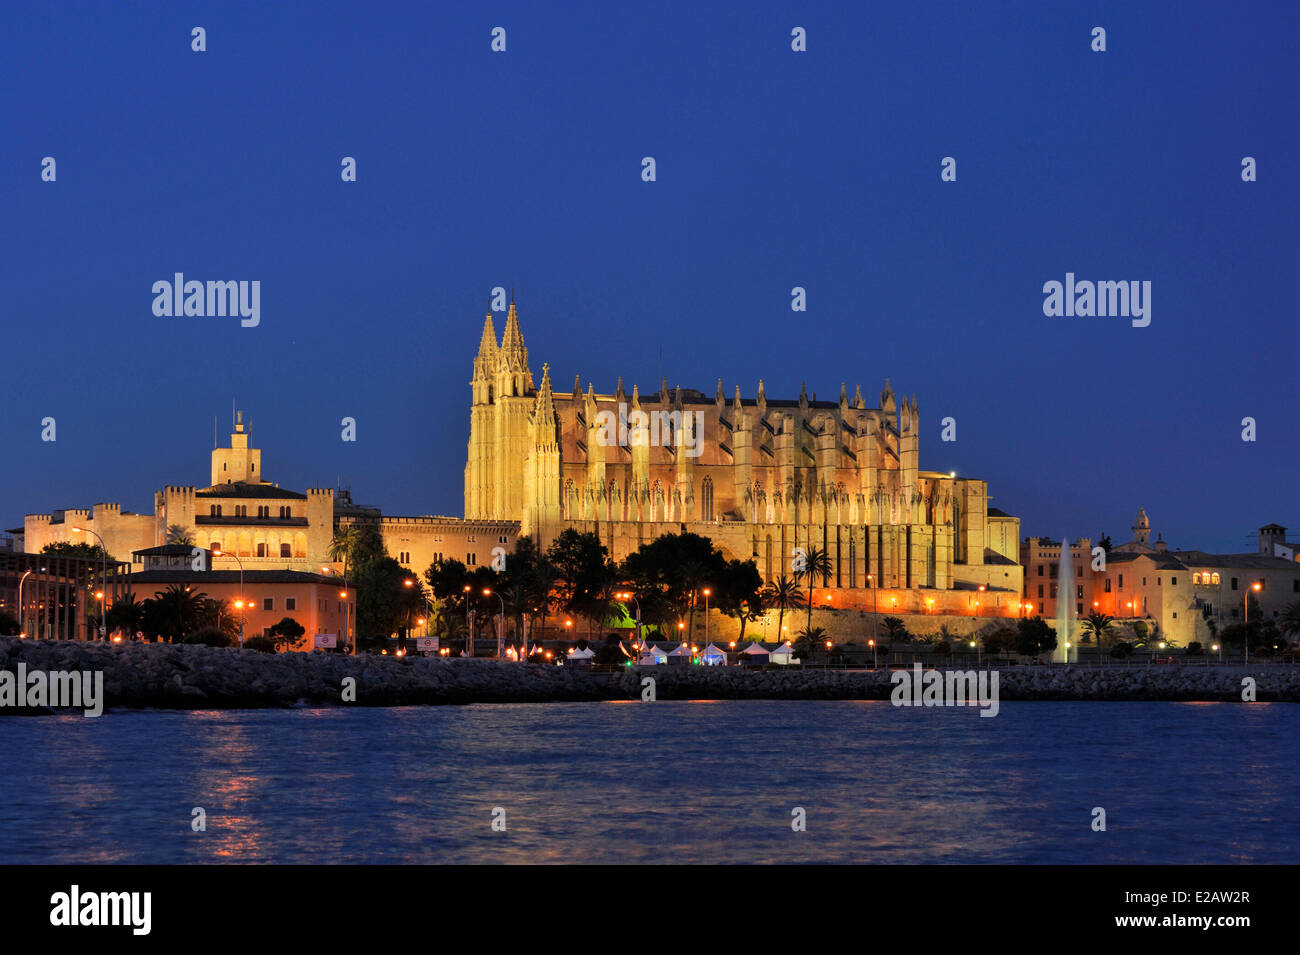 Spain, Balearic Islands, Mallorca, Palma, Cathedral by night - Stock Image